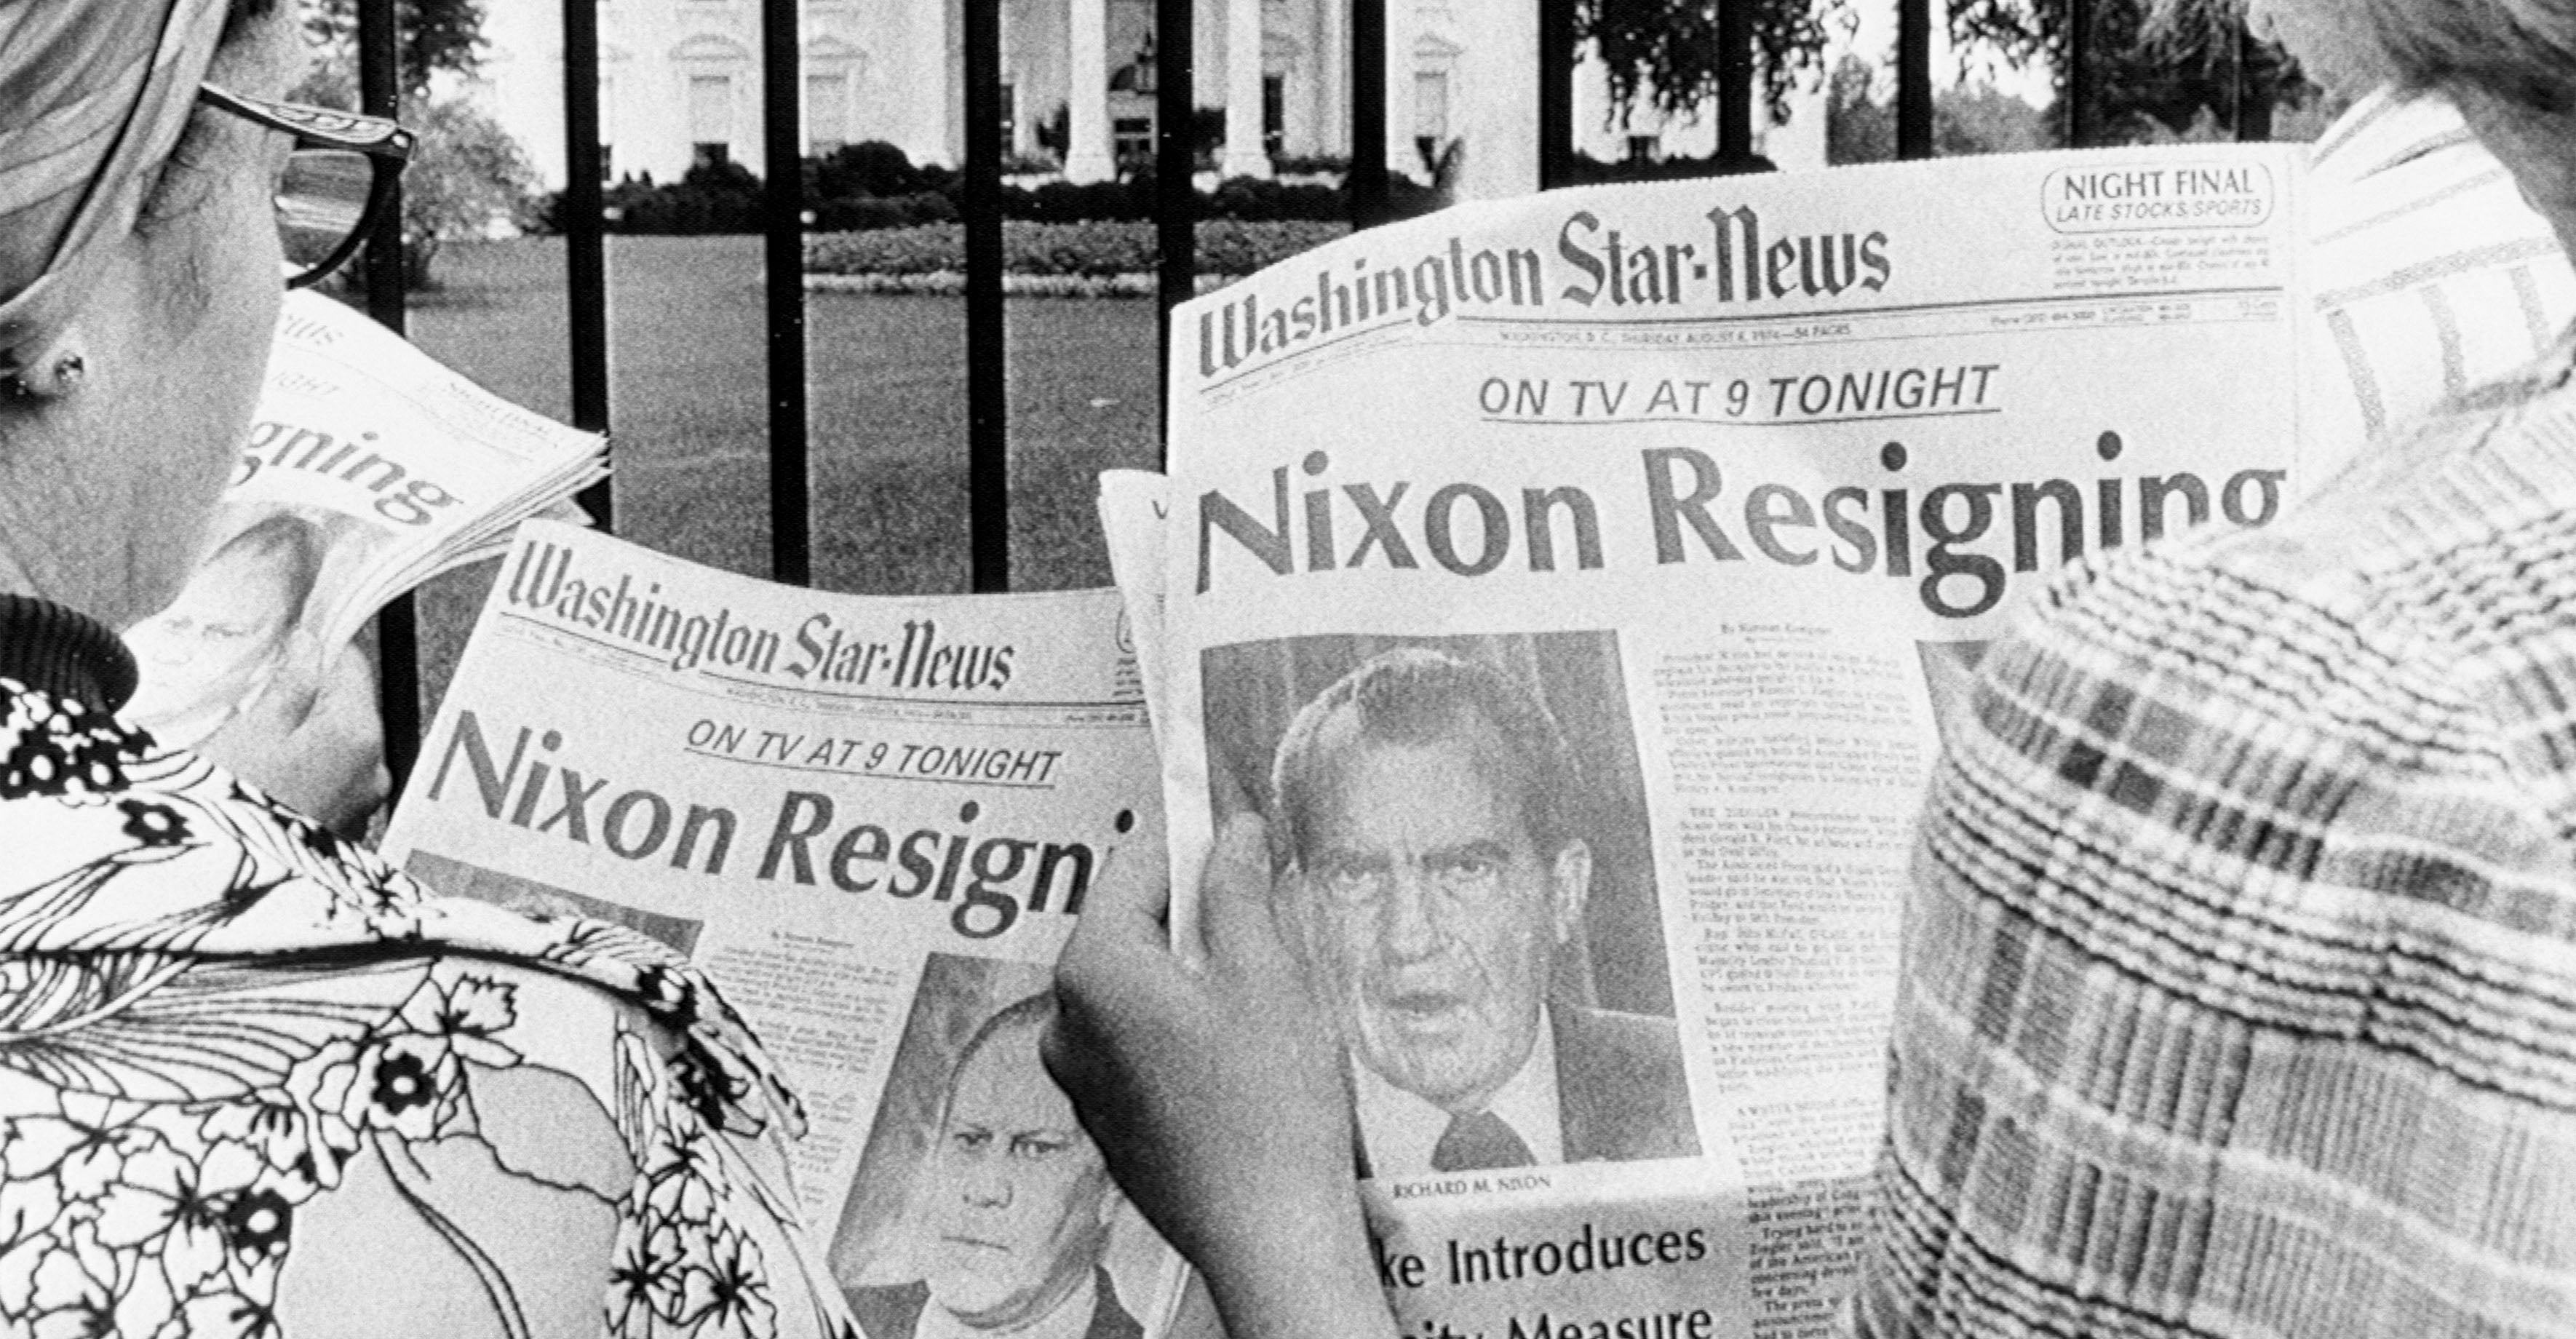 D.C. newspaper headlines being read by tourists in front of the White House on the eve of Nixon's resignation.